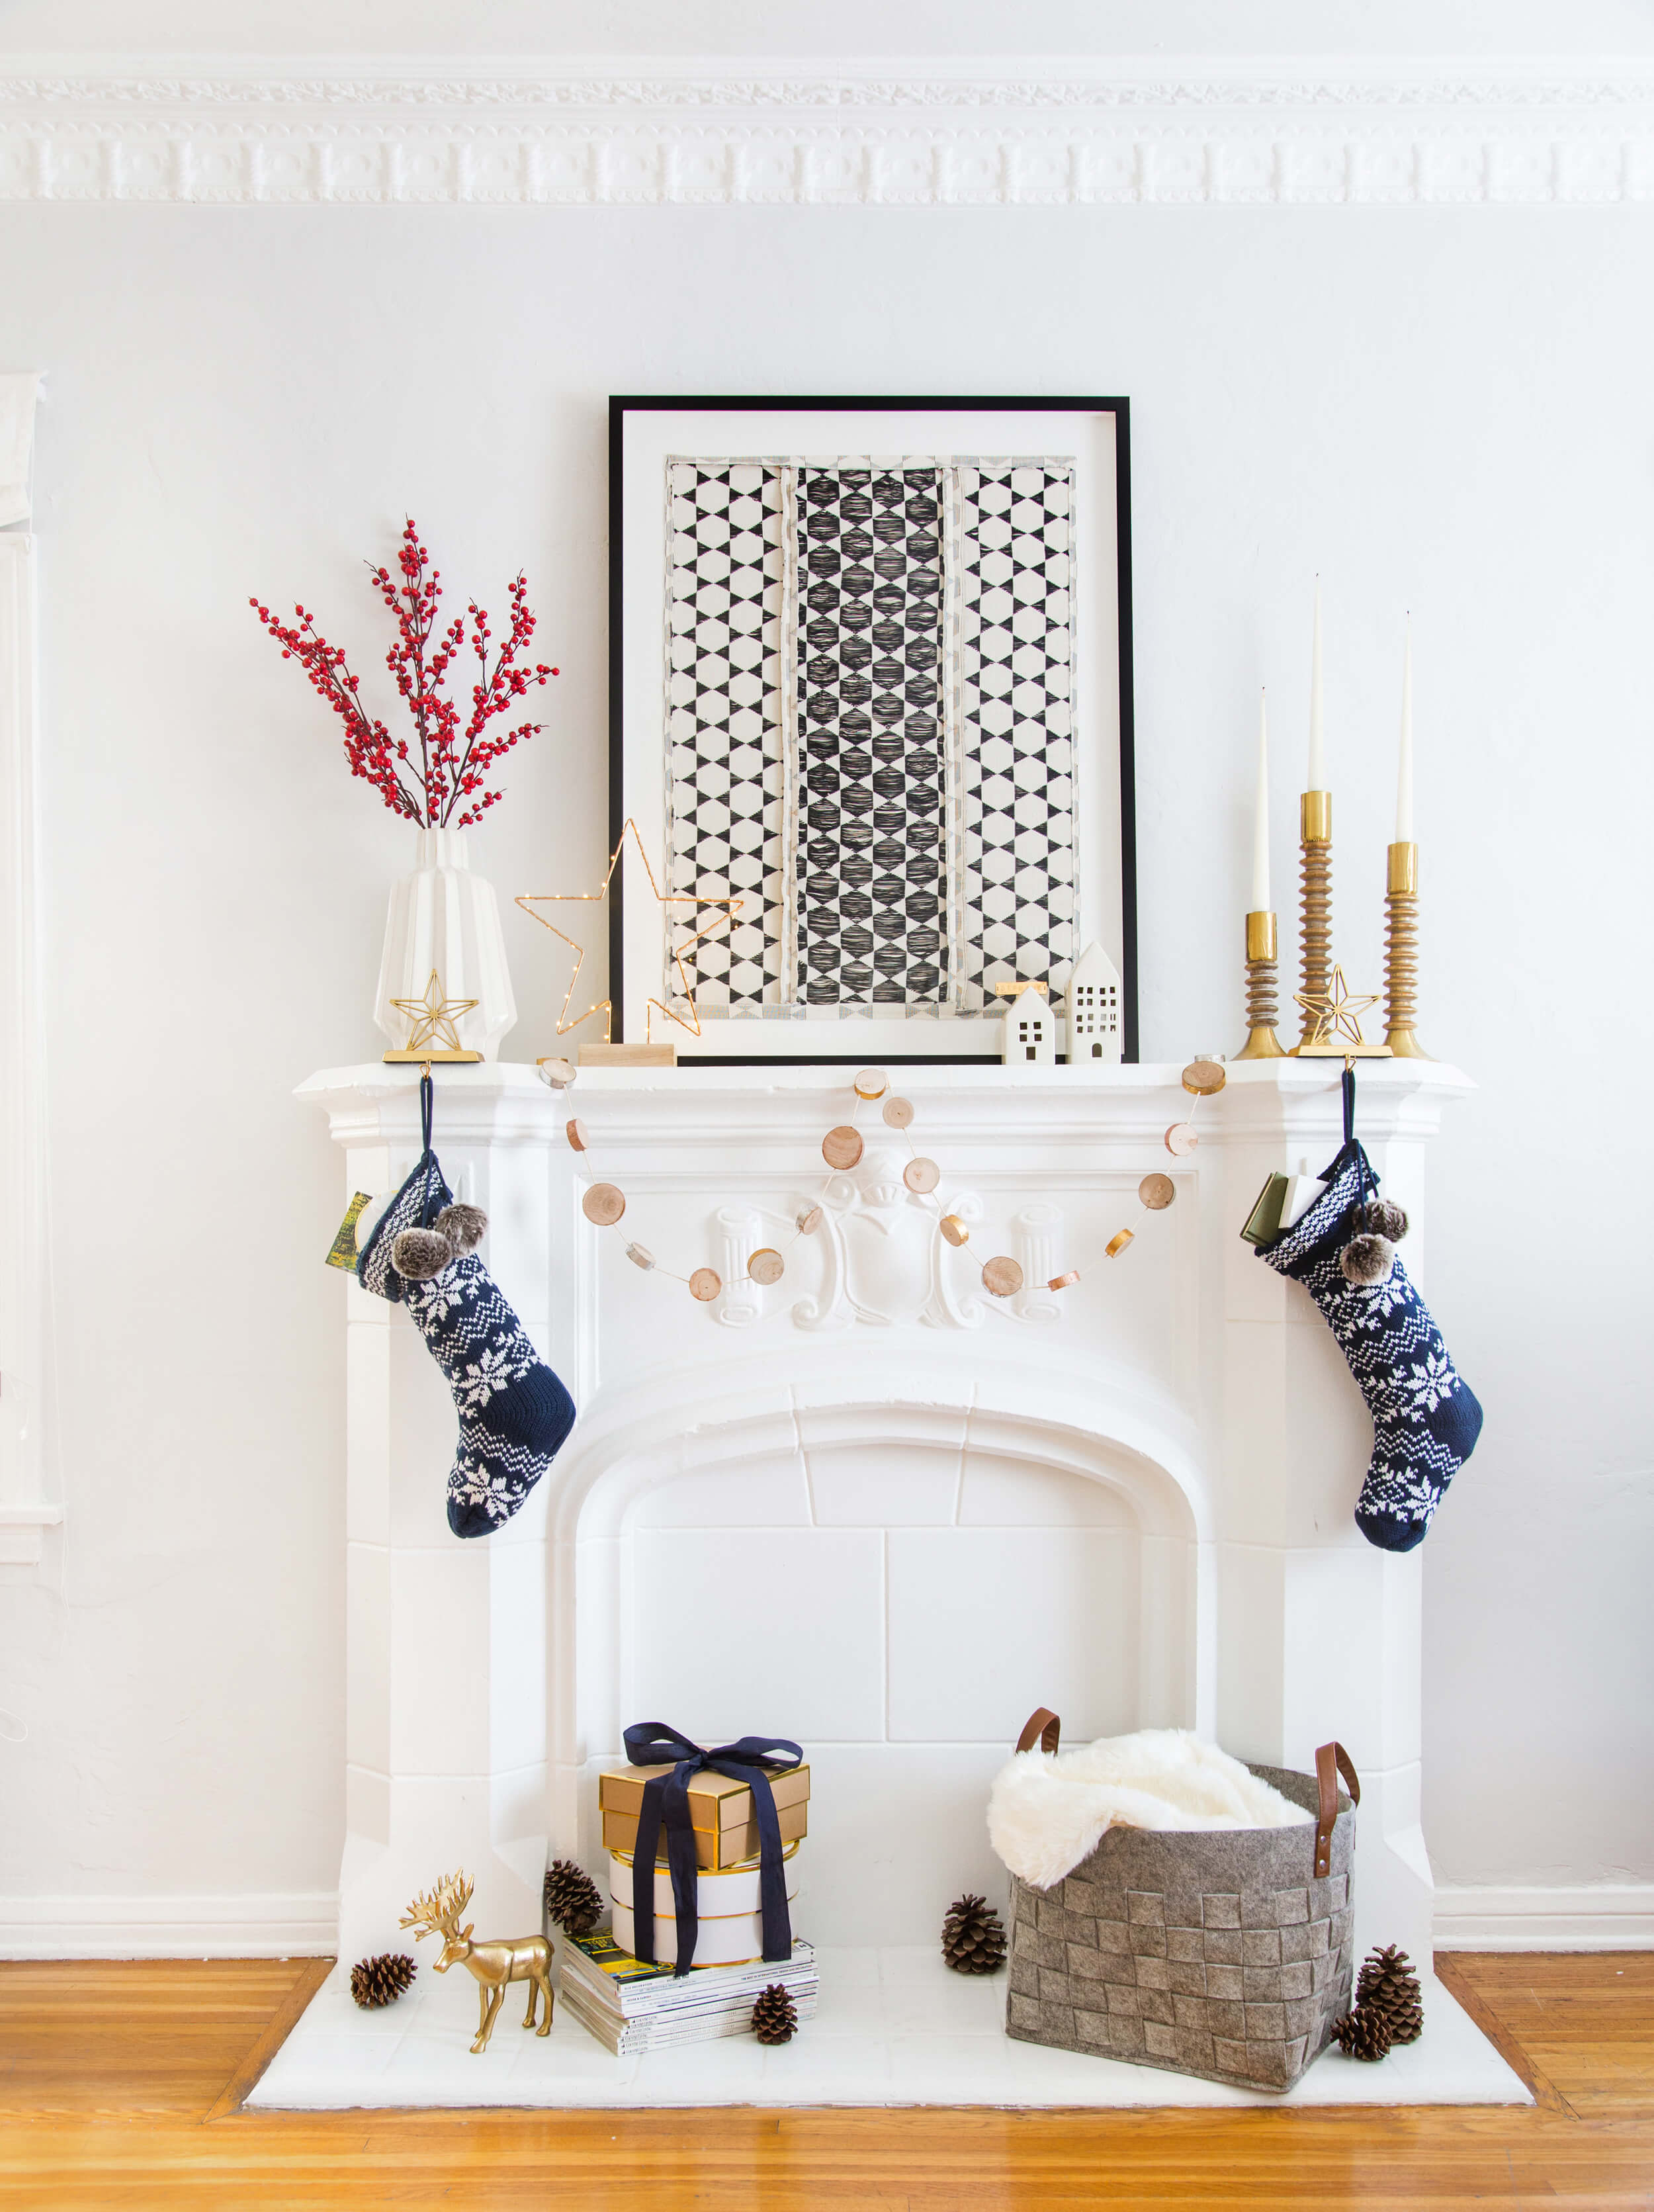 GINNY_MACDONALD_HOLIDAY_DECORATING_CHRISTMAS_WHITE_NEUTRAL_COSY_COTTAGE_11